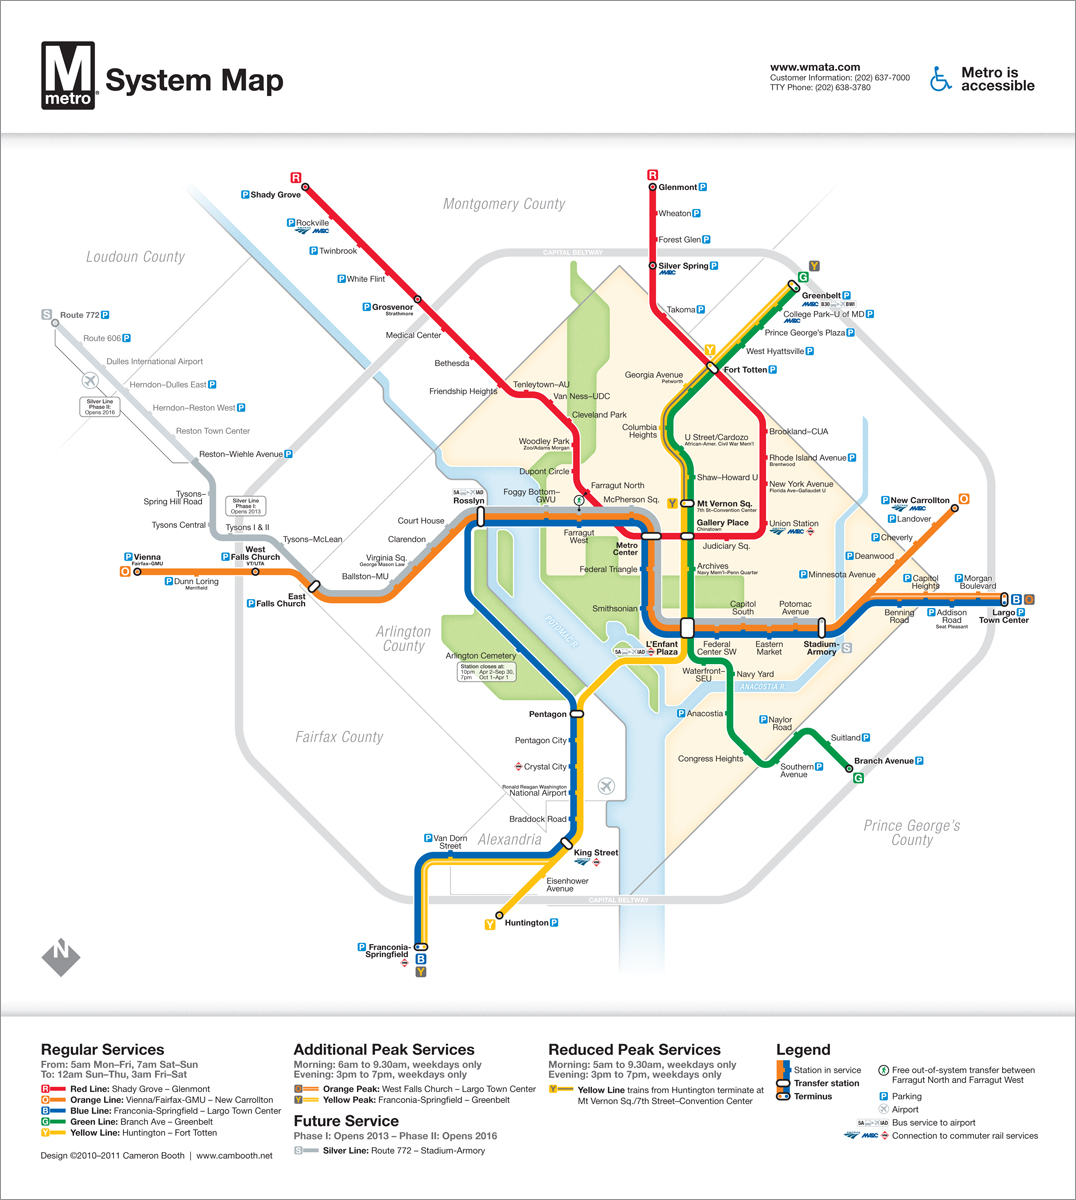 Wmata Subway Map.A More Polished Re Design Of The Dc Metro Map